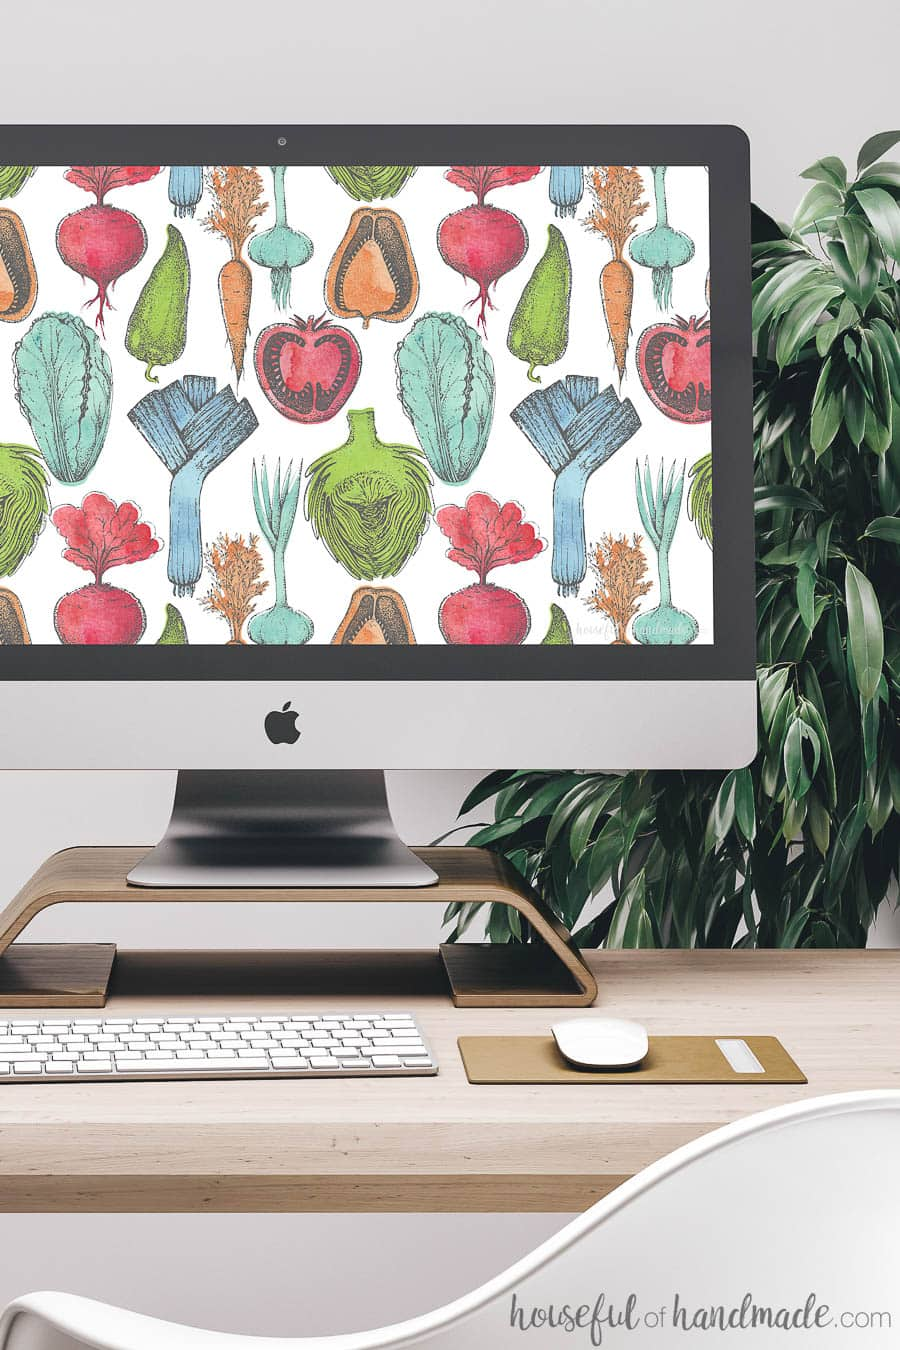 Desktop computer screen decorated with free digital wallpaper. The colorful watercolor produce design is reminiscent of summer farmers markets.